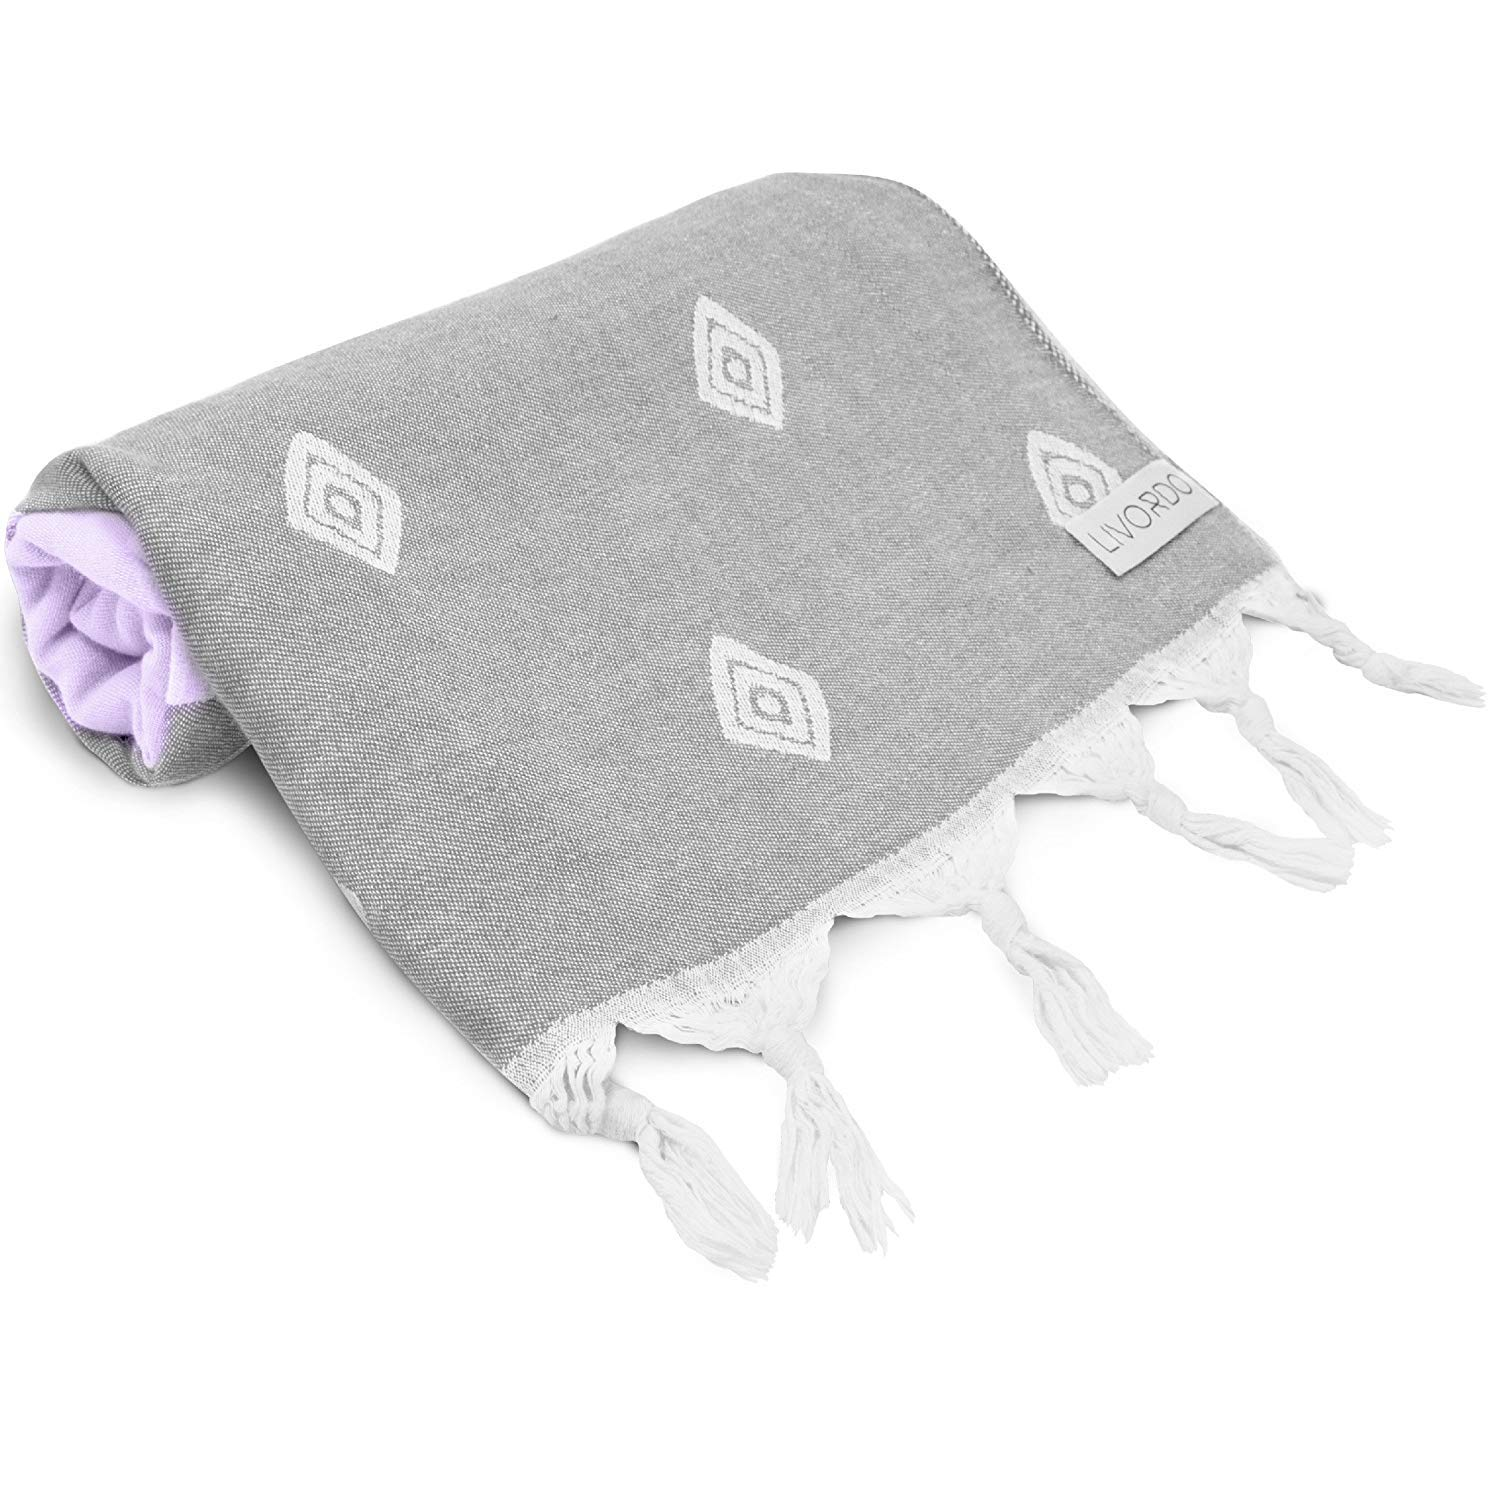 Livordo Beach Turkish Towel Absorbent 100% Soft Cotton Made in Turkey Quick Dry Bath, Sauna, Hamam (Bursand - Lilac/Gray, Large)